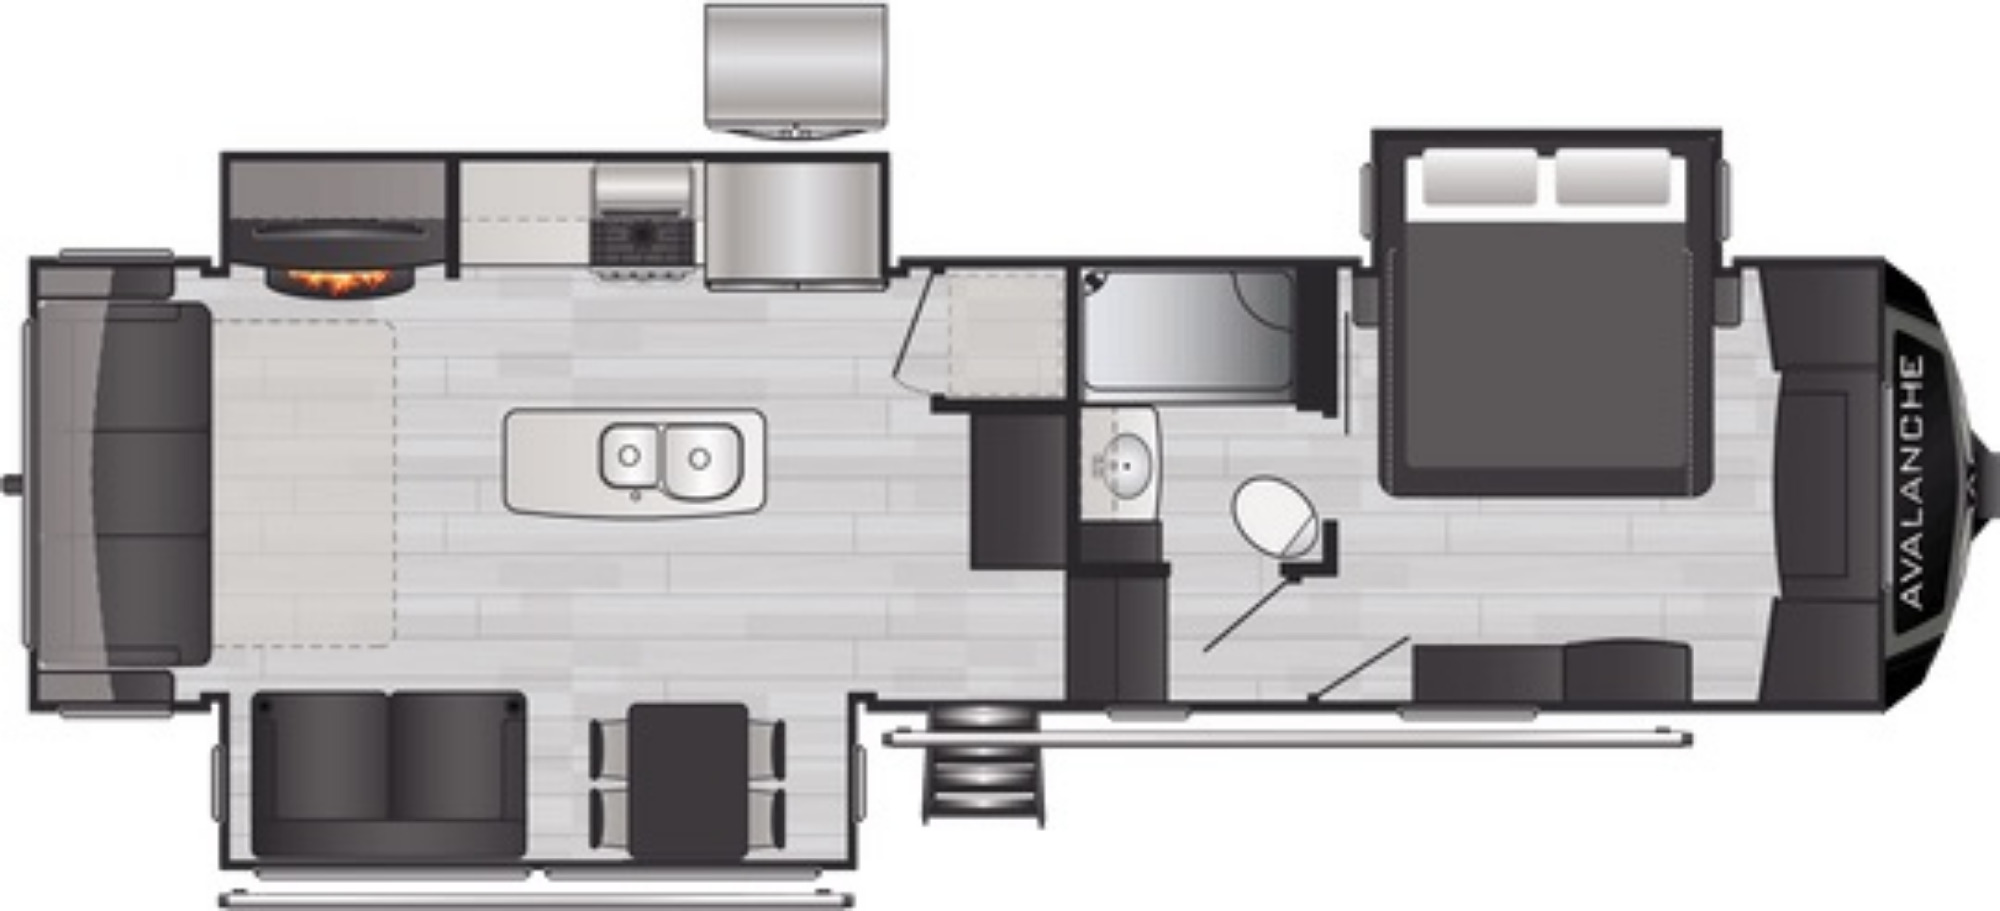 View Floor Plan for 2021 KEYSTONE AVALANCHE 312RS